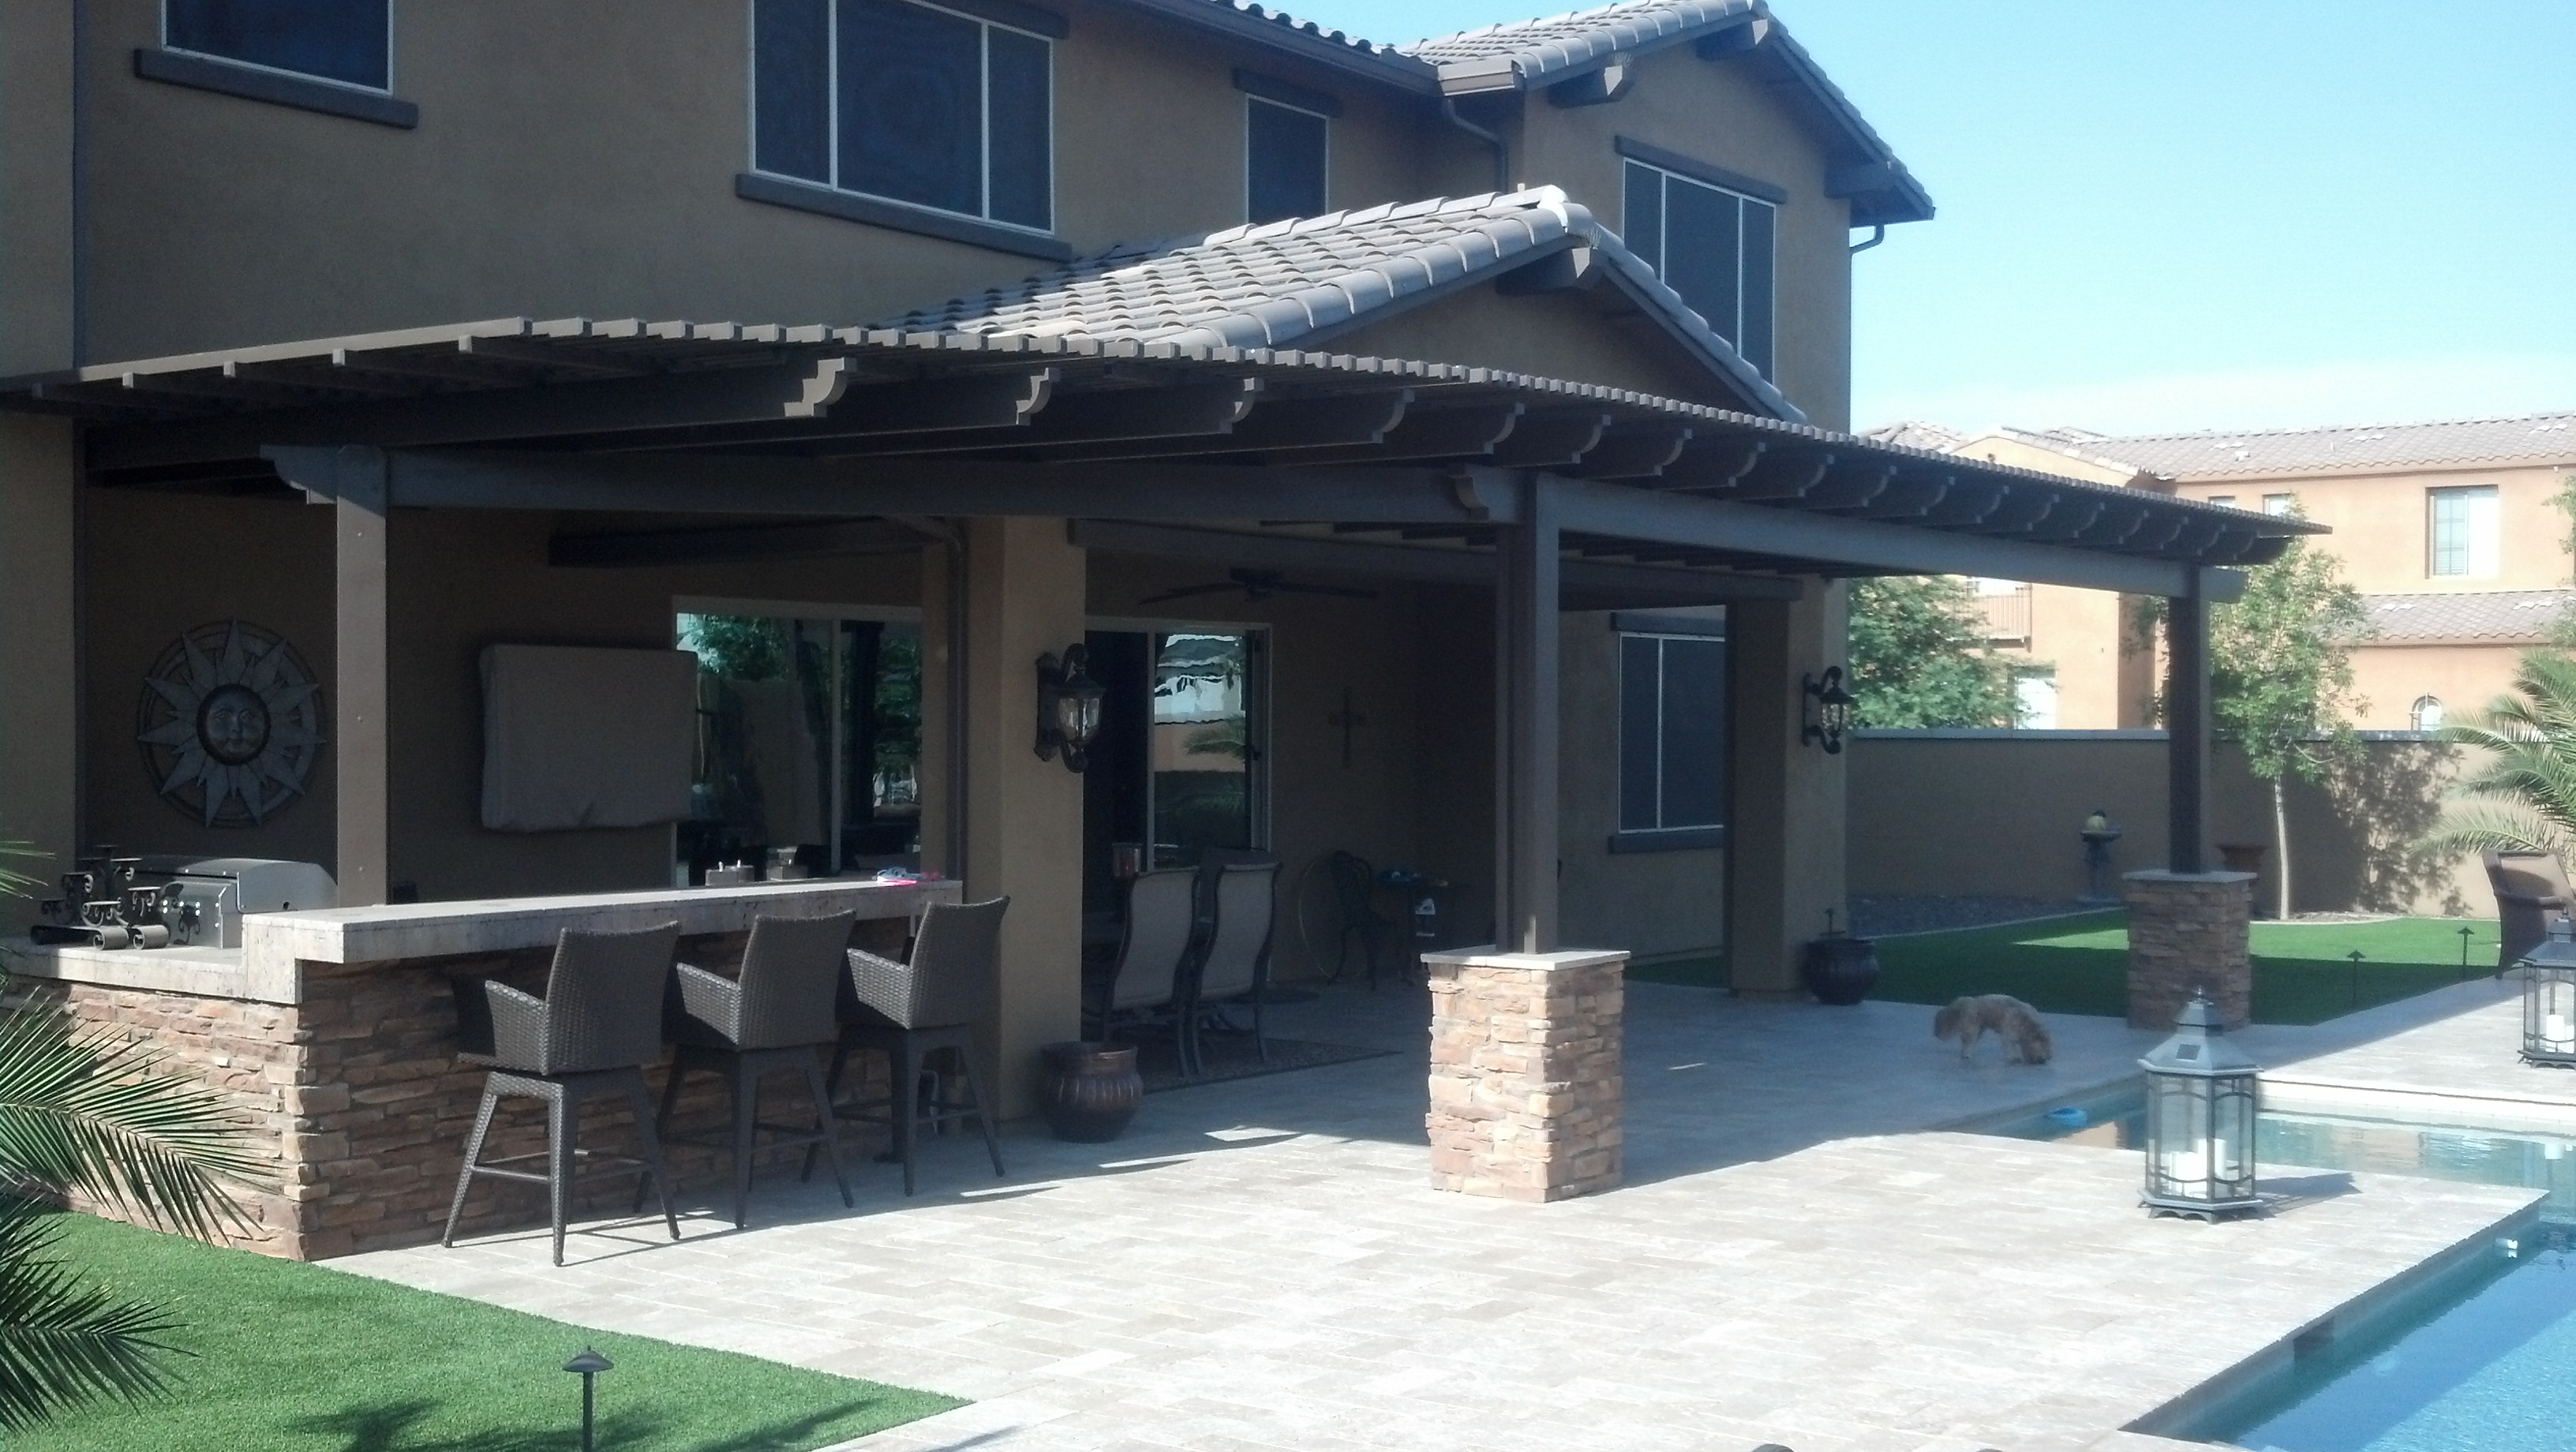 Alumawood Patio Covers Arizona Rain Gutters Shade Experts Pertaining To Proportions 3264 X 1840